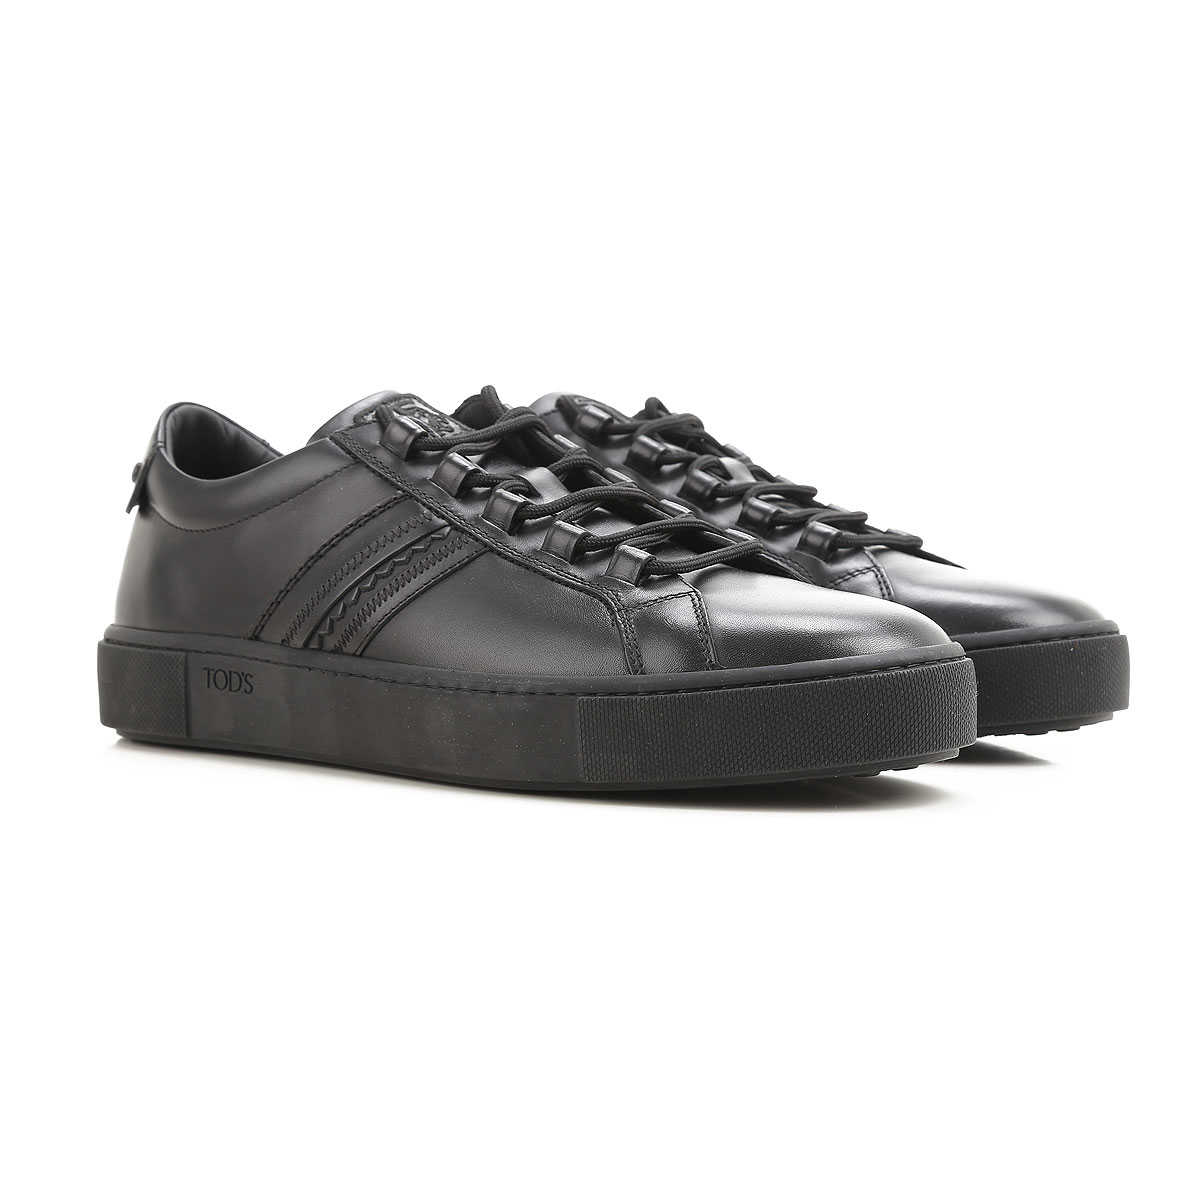 Tods Sneakers for Men, Black, Leather